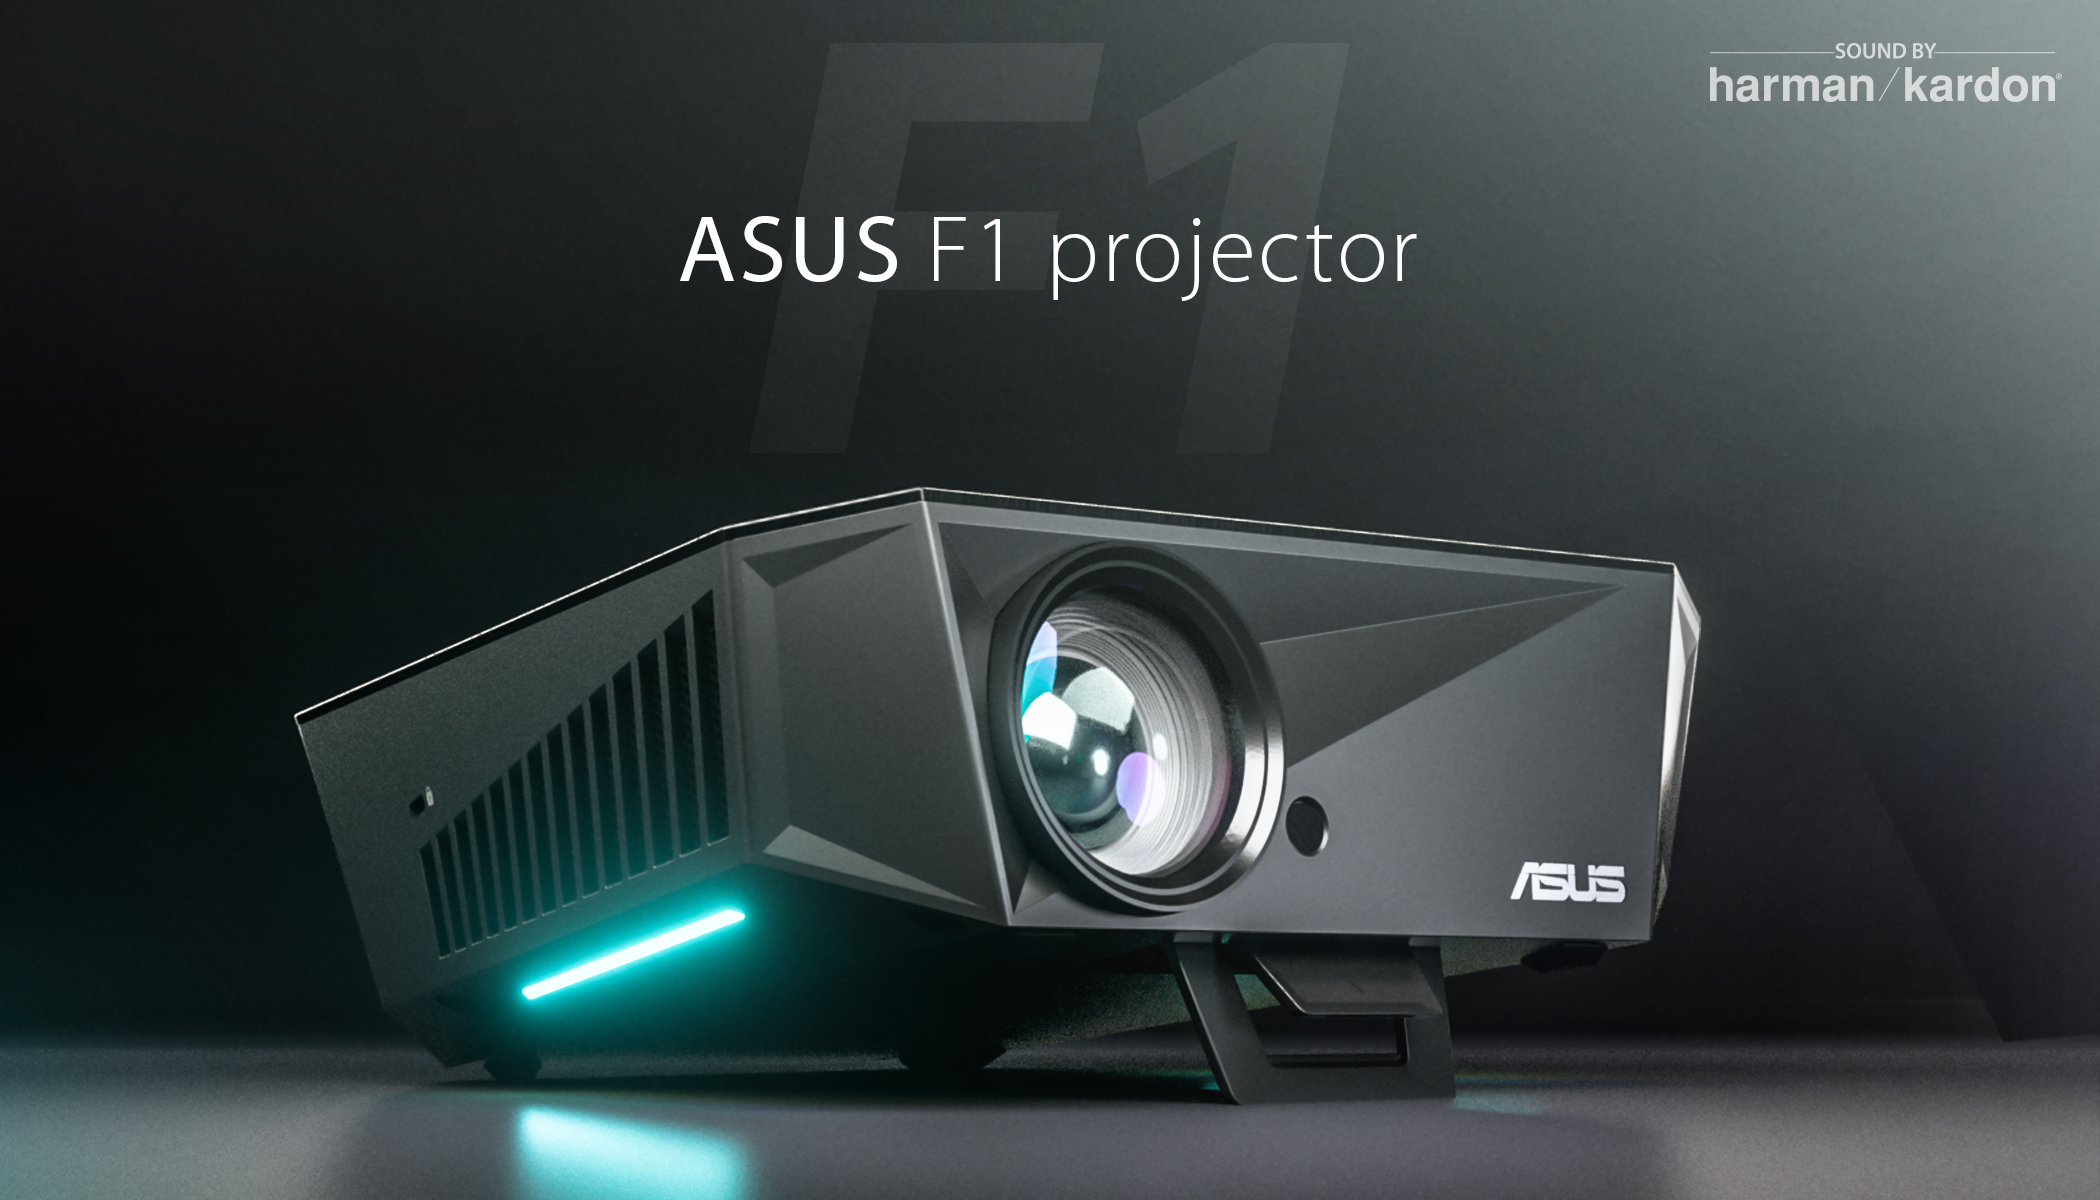 ASUS Announces F1 Projector - 120Hz capable with audio from